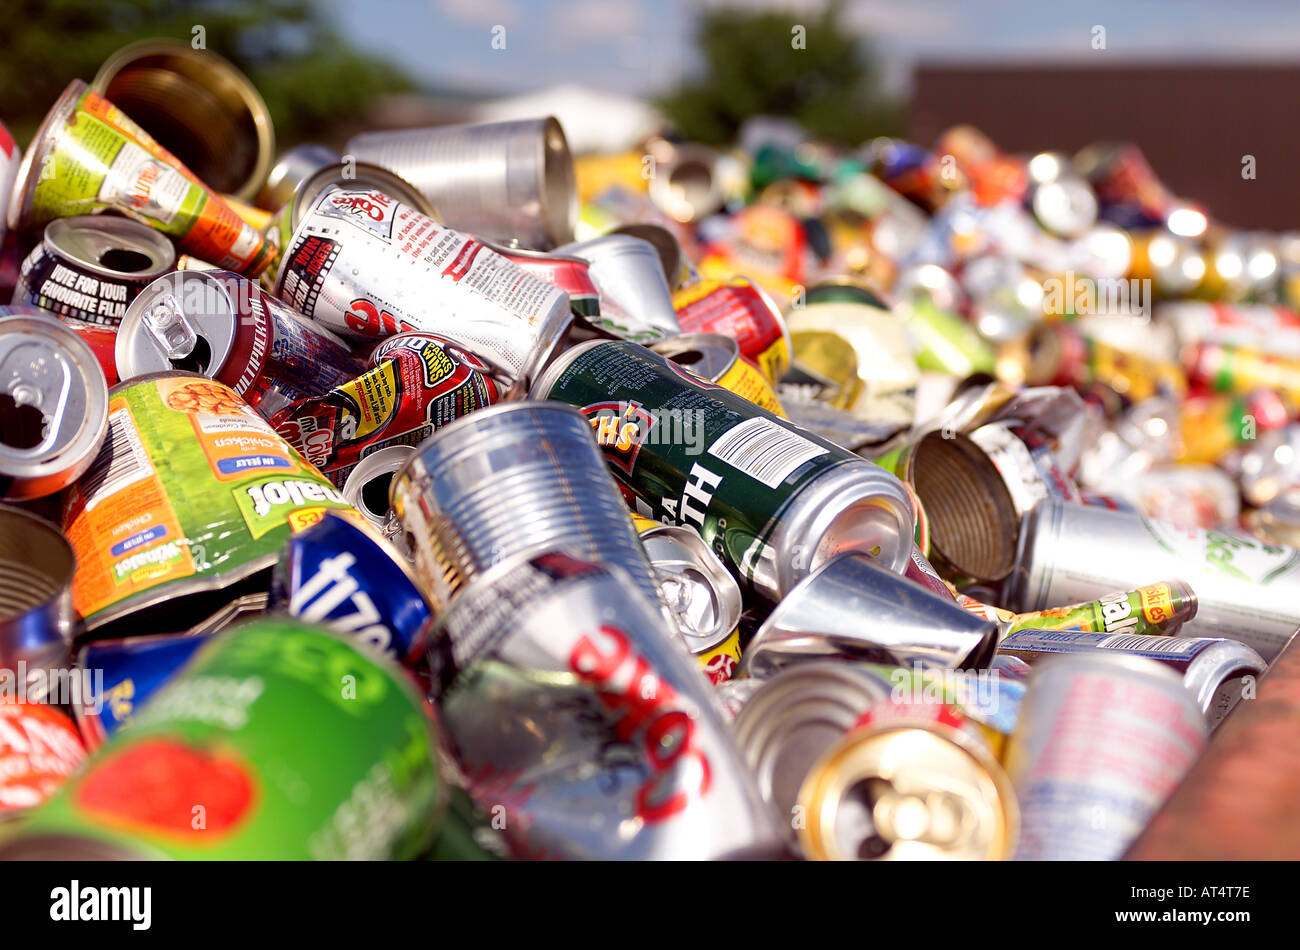 Recycled Aluminium drinks cans - Stock Image